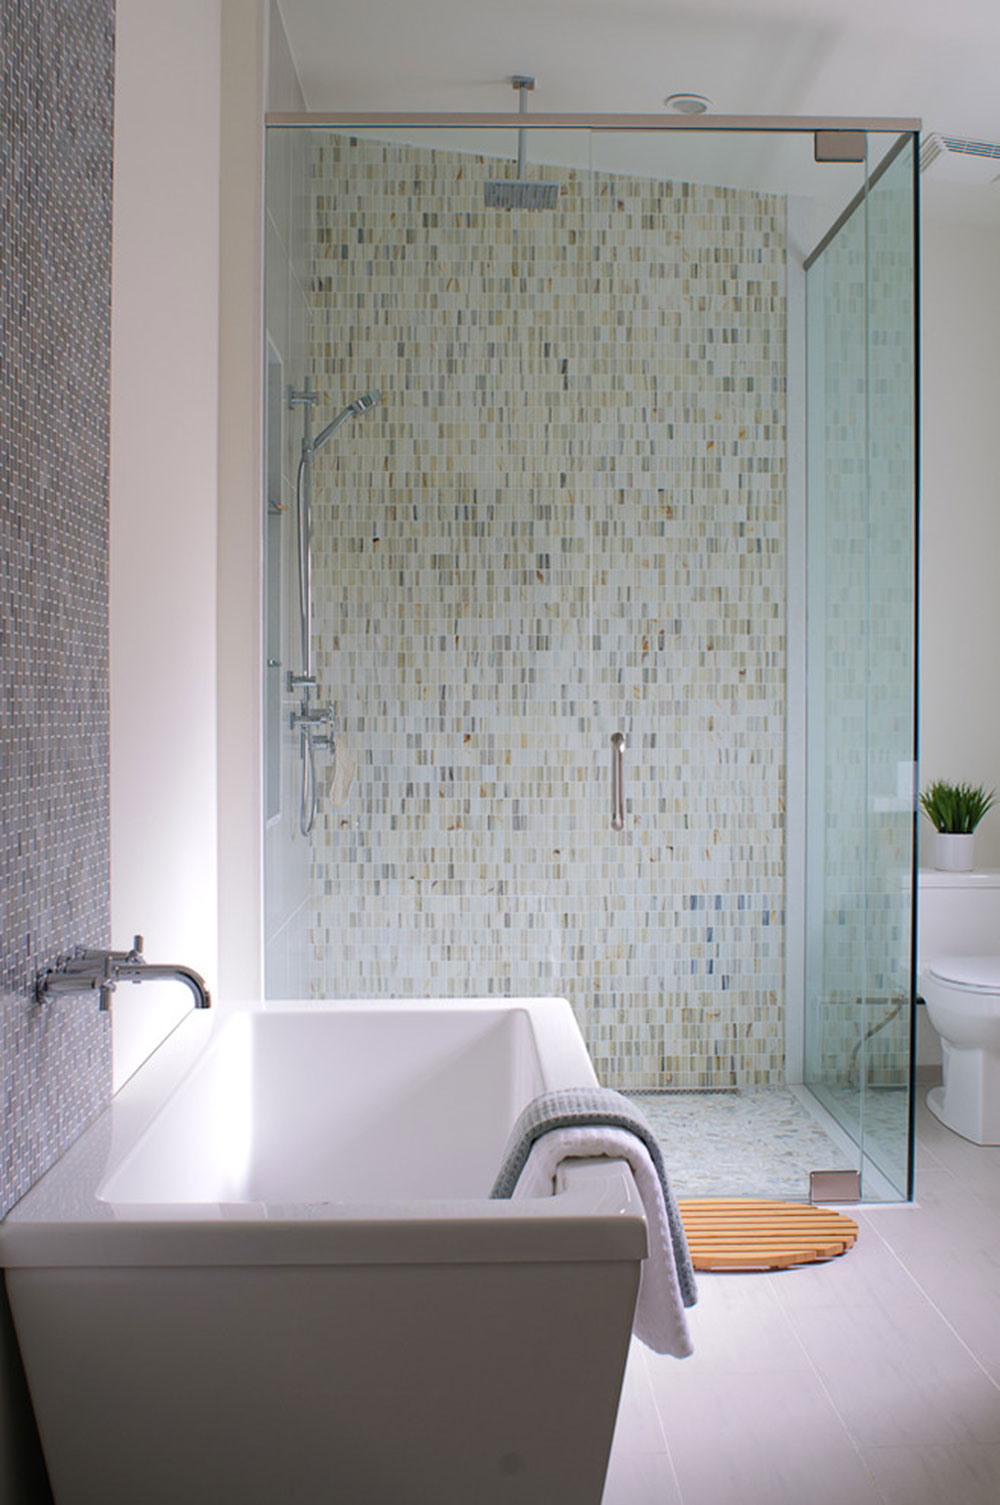 Mid-Centruy-Modern-Home-Reno-by-Slagib202 How to Clean the Fiber Optic Shower (Quick Tips for Use)